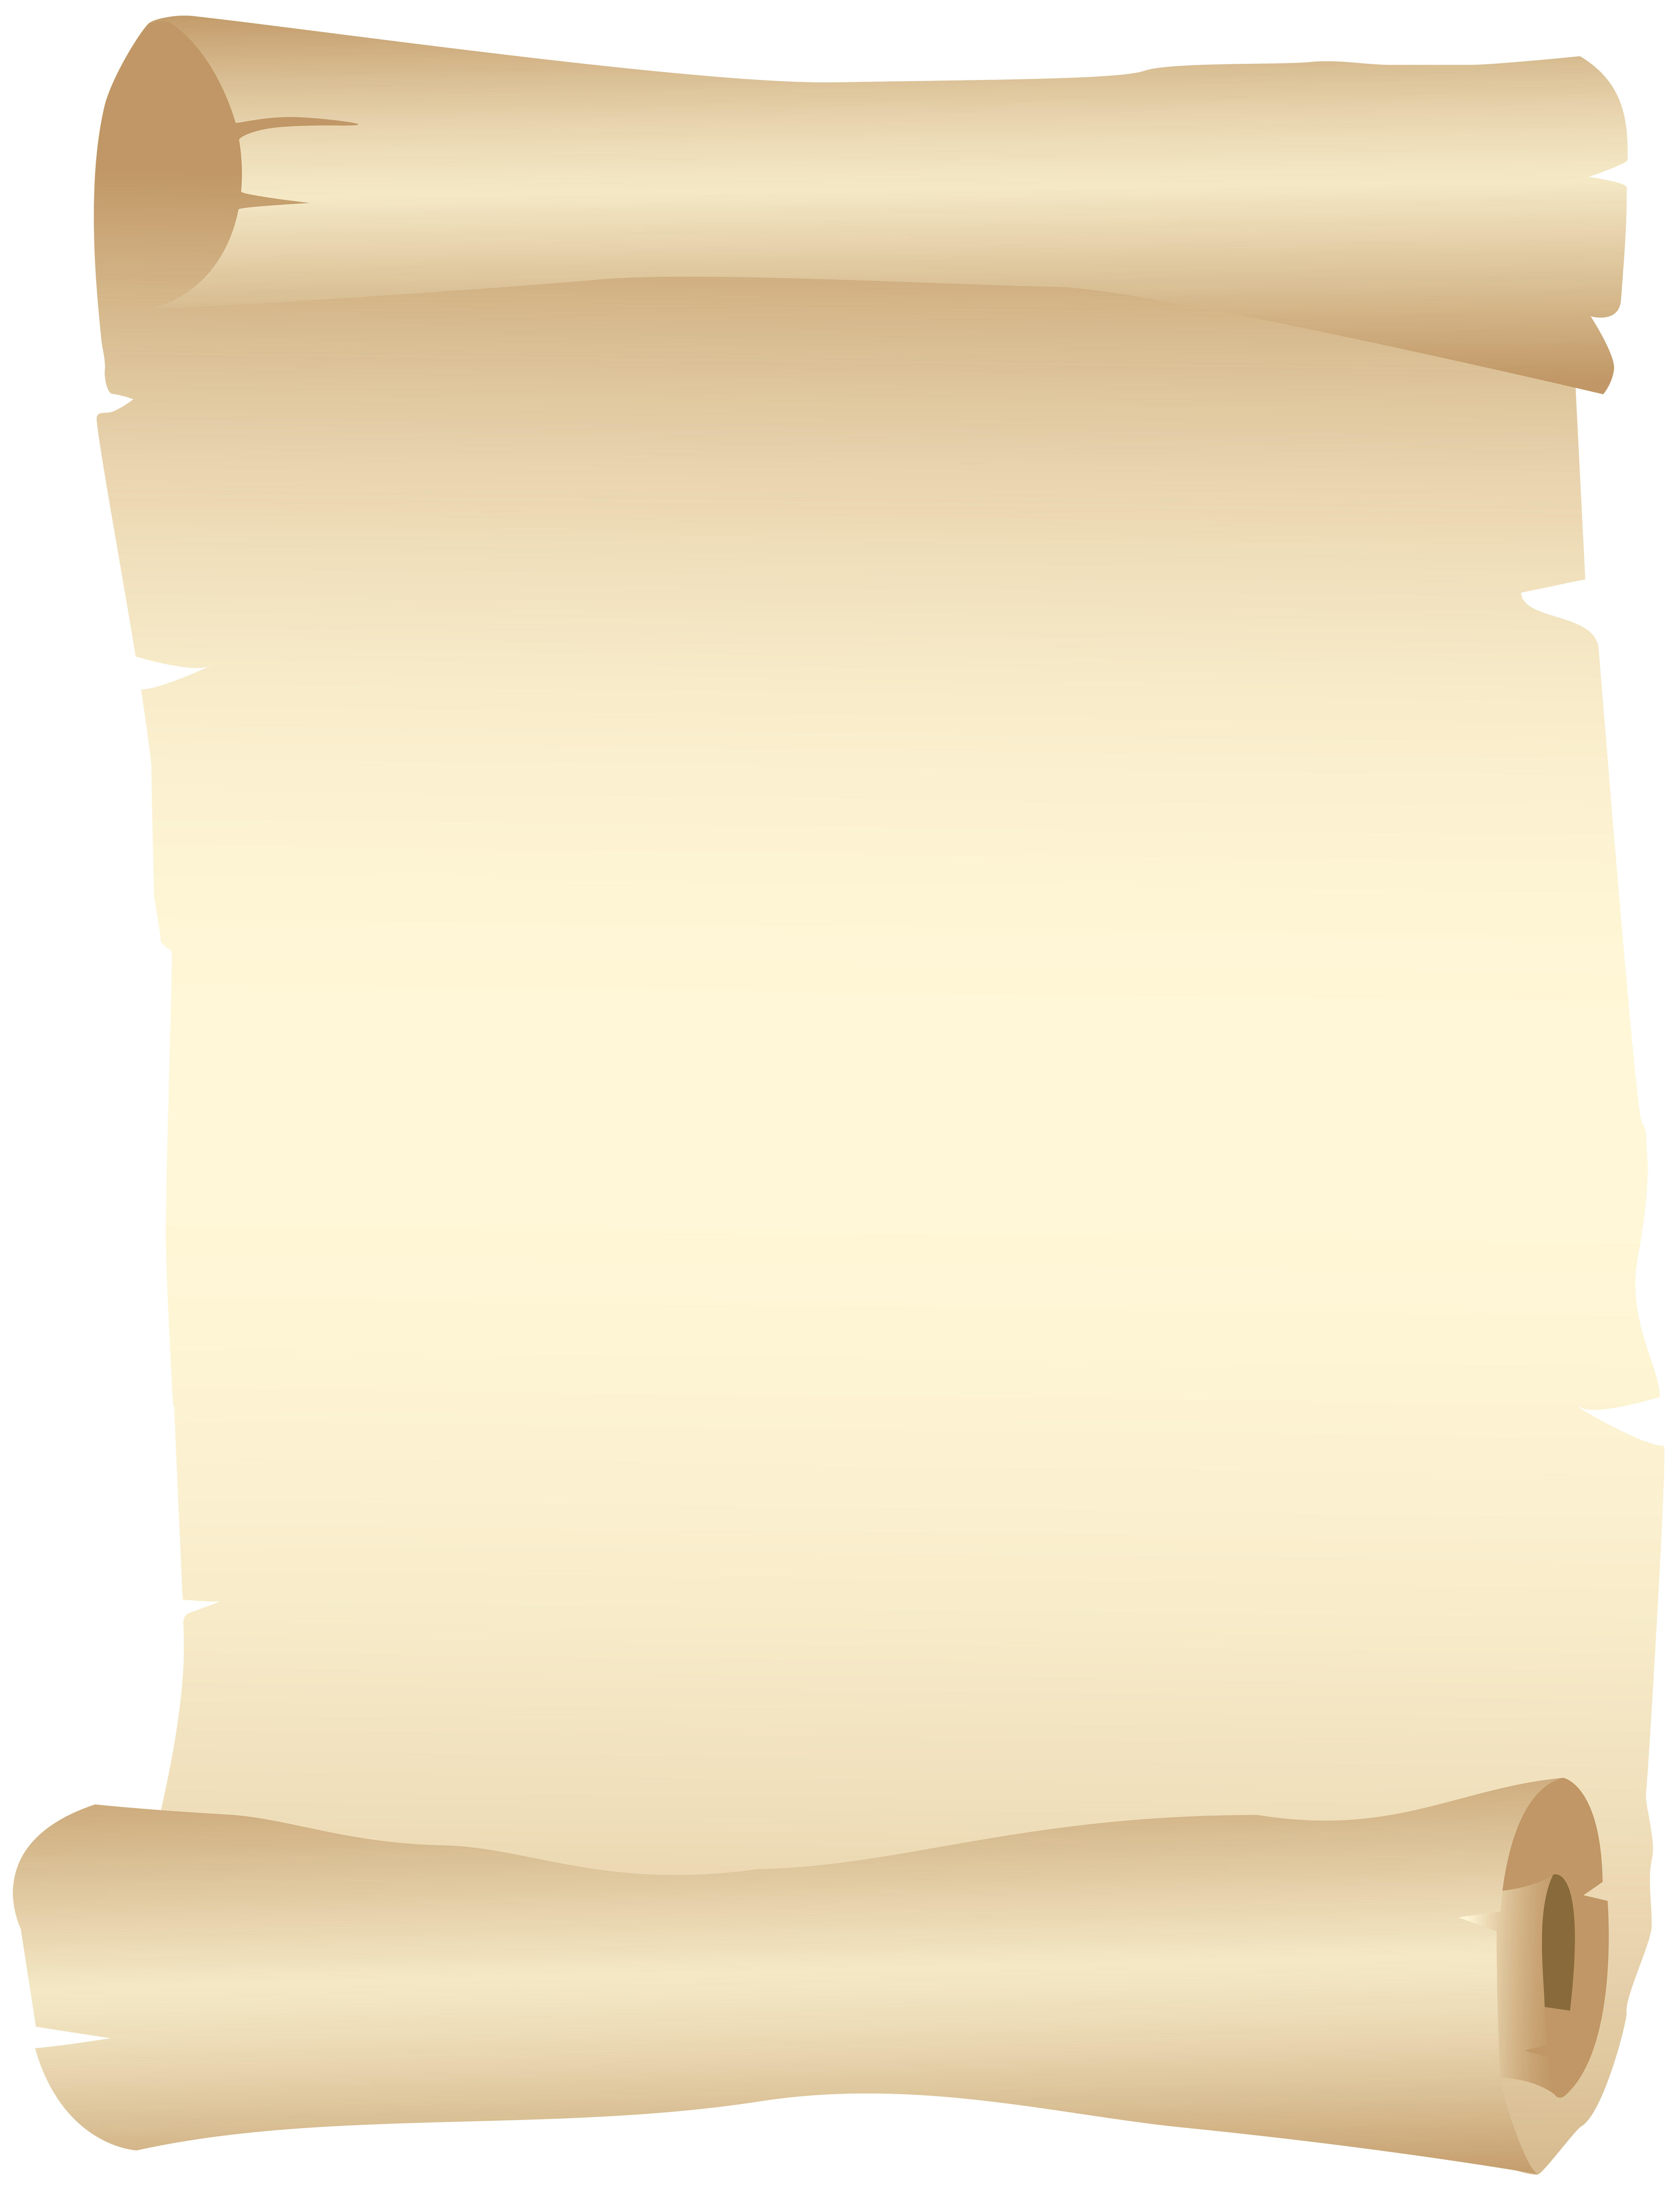 Old scroll png. Clip art image gallery